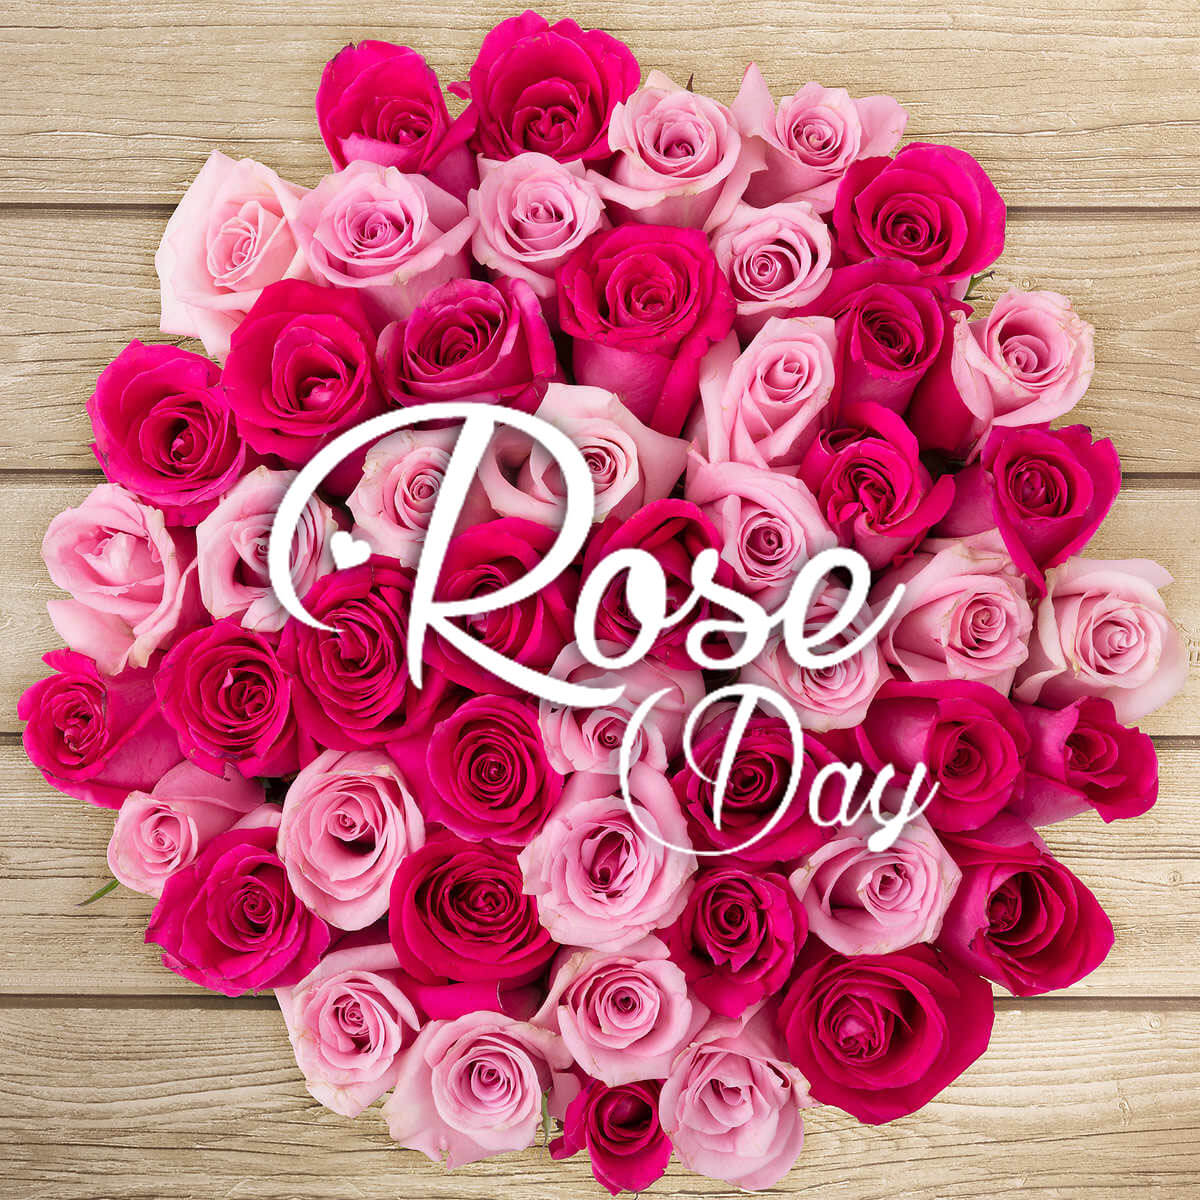 happy rose day pink flower love wishes greetings image picture hd wallpaper